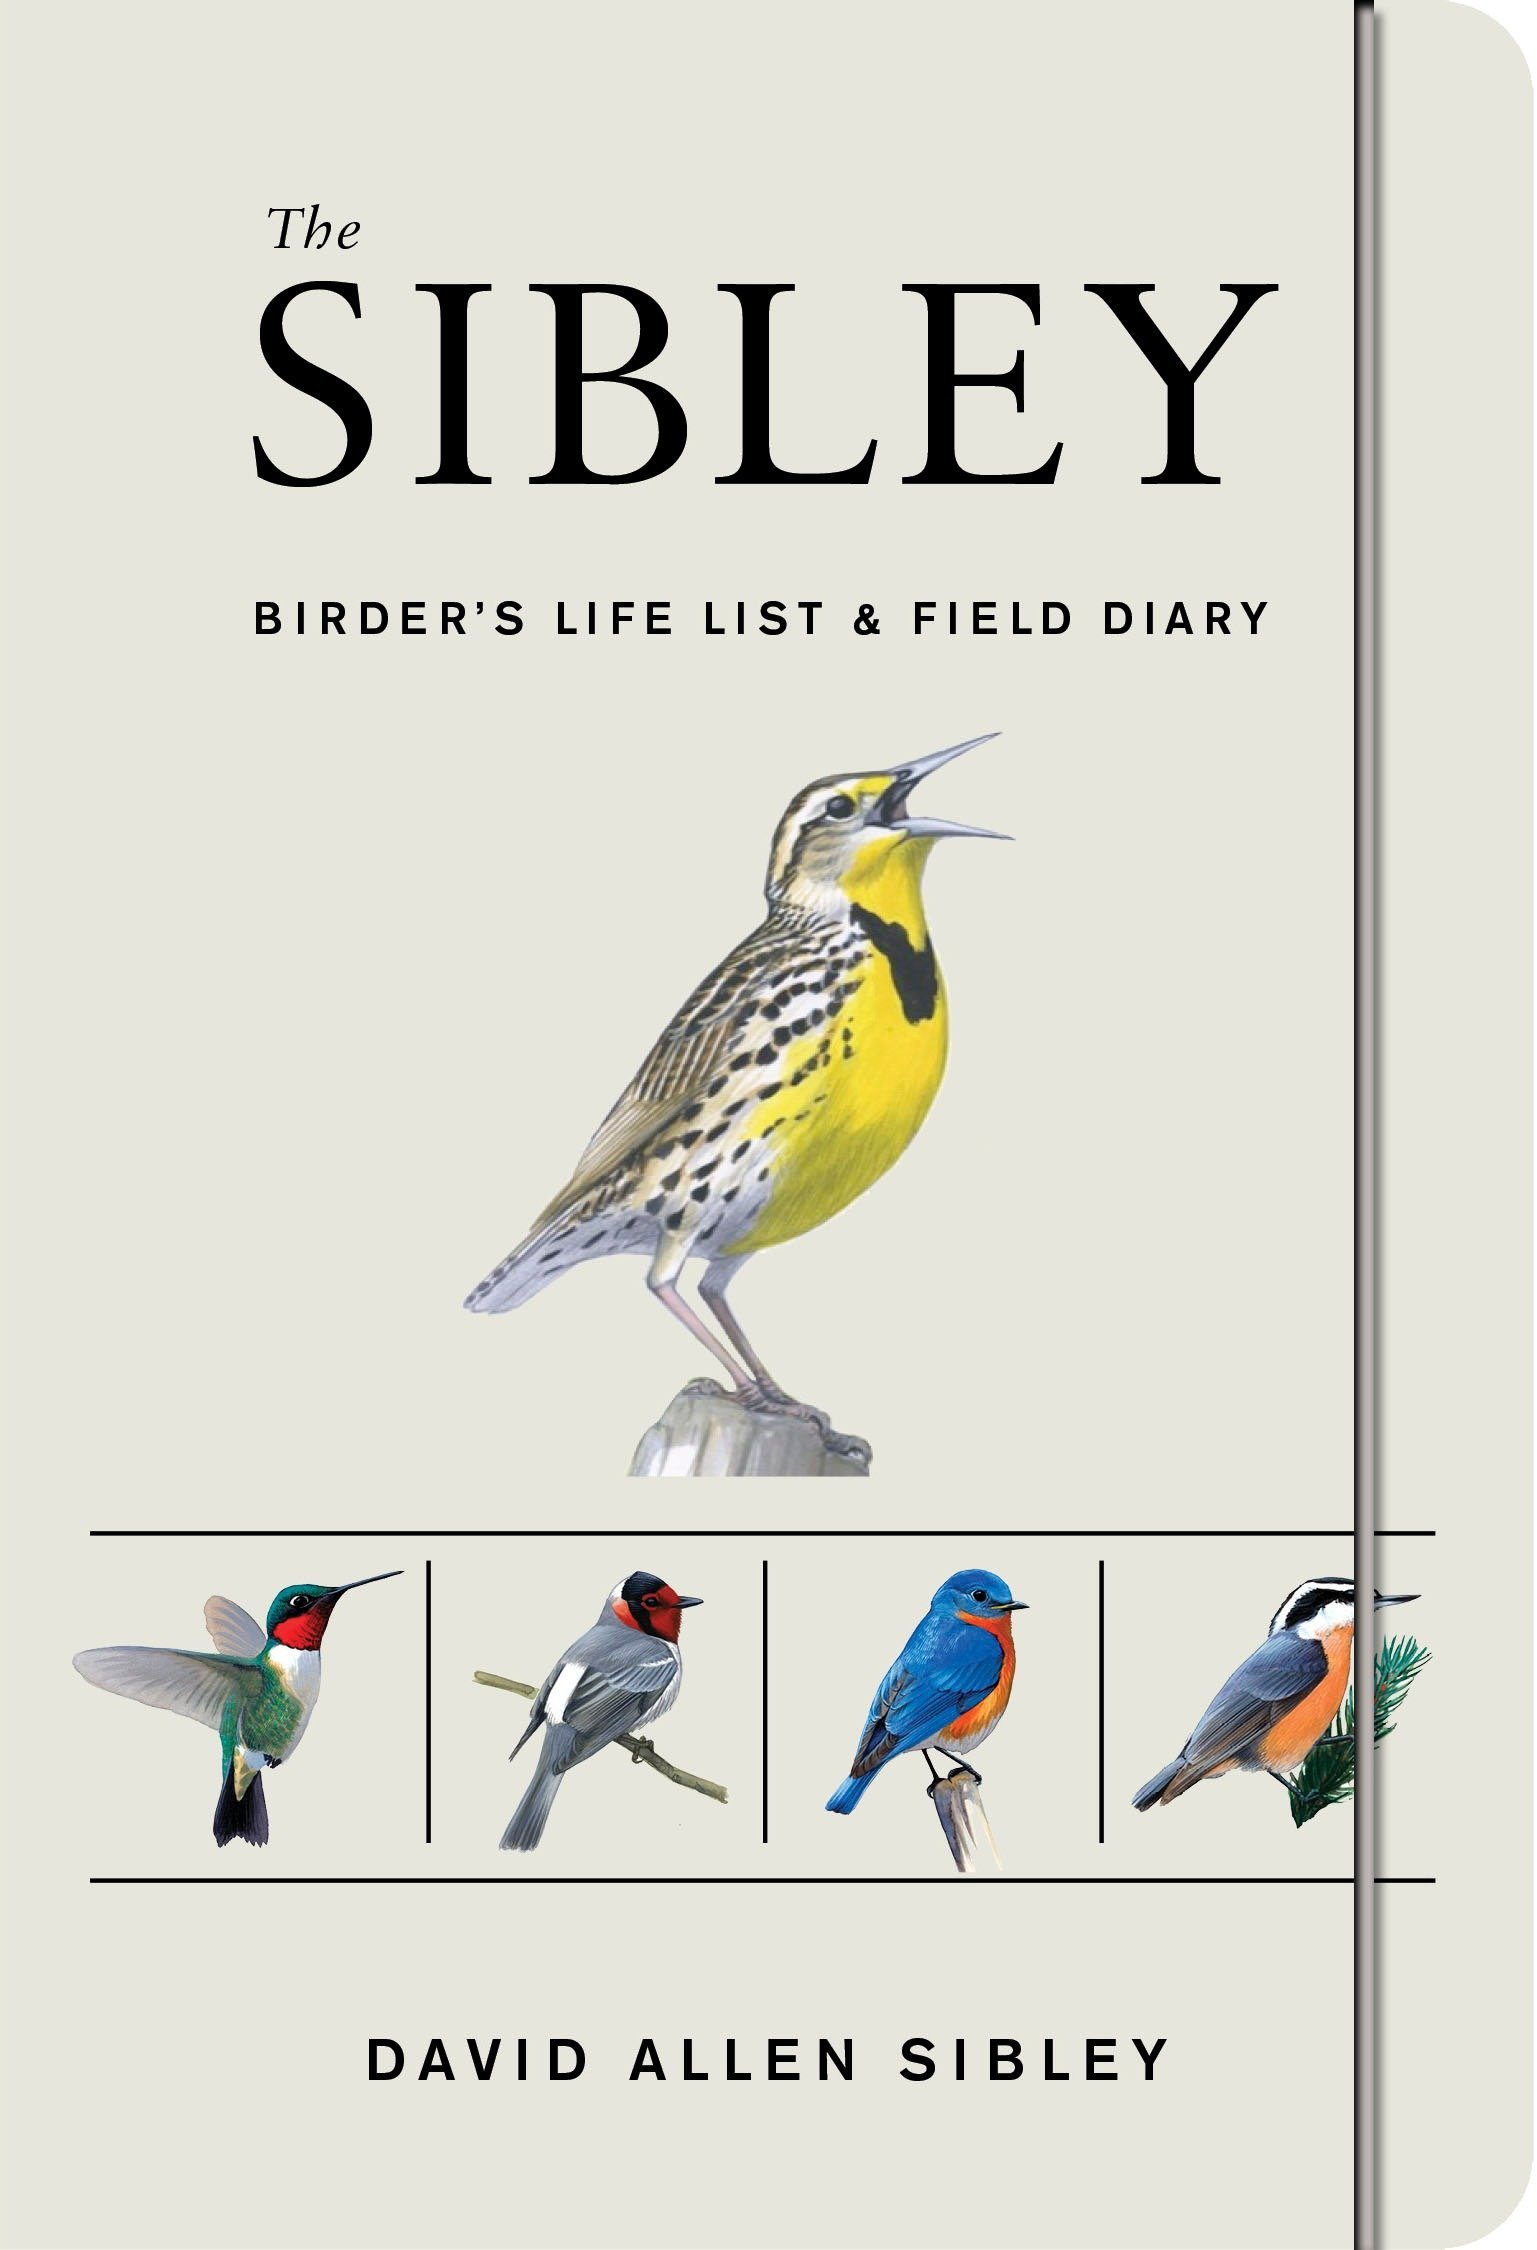 the sibley birder's life list and dictionary